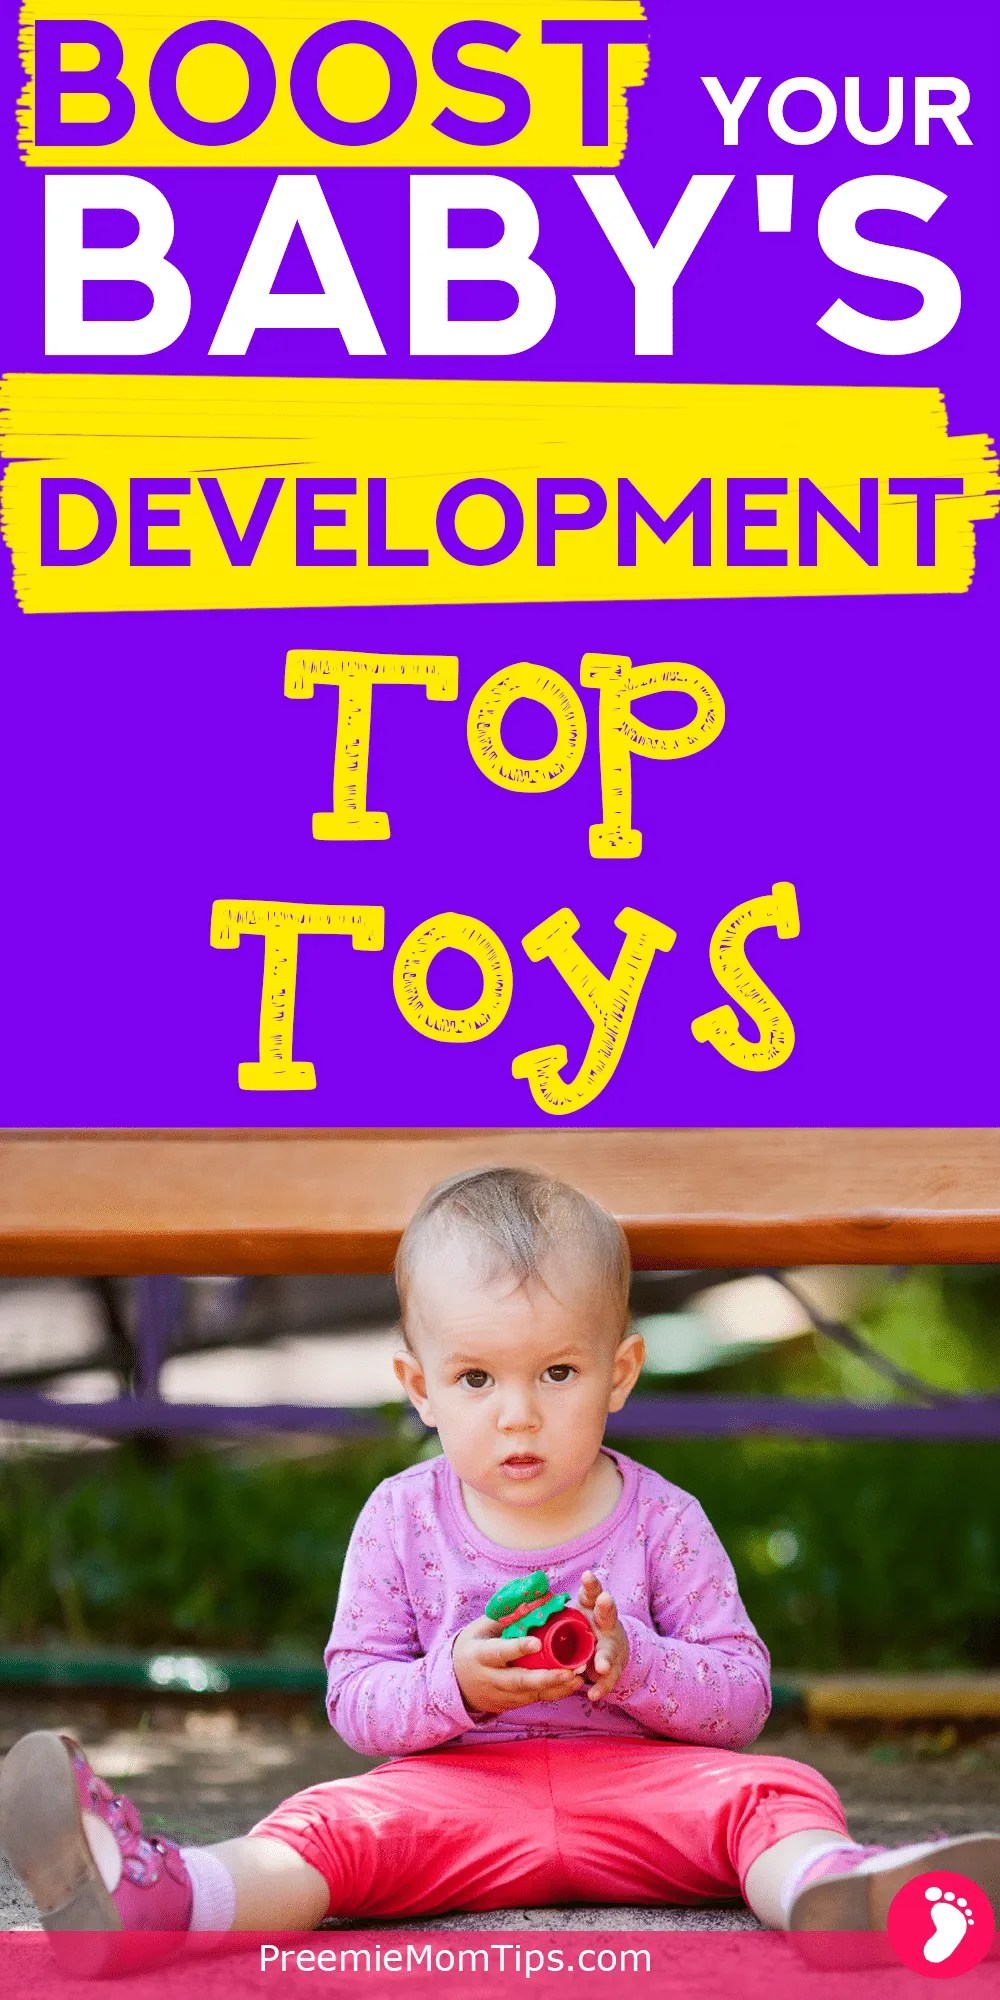 Every moms must-haves for their baby's development. Check out these amazing developmental toys to give your little one's brain, sense, and muscles, a big boost!